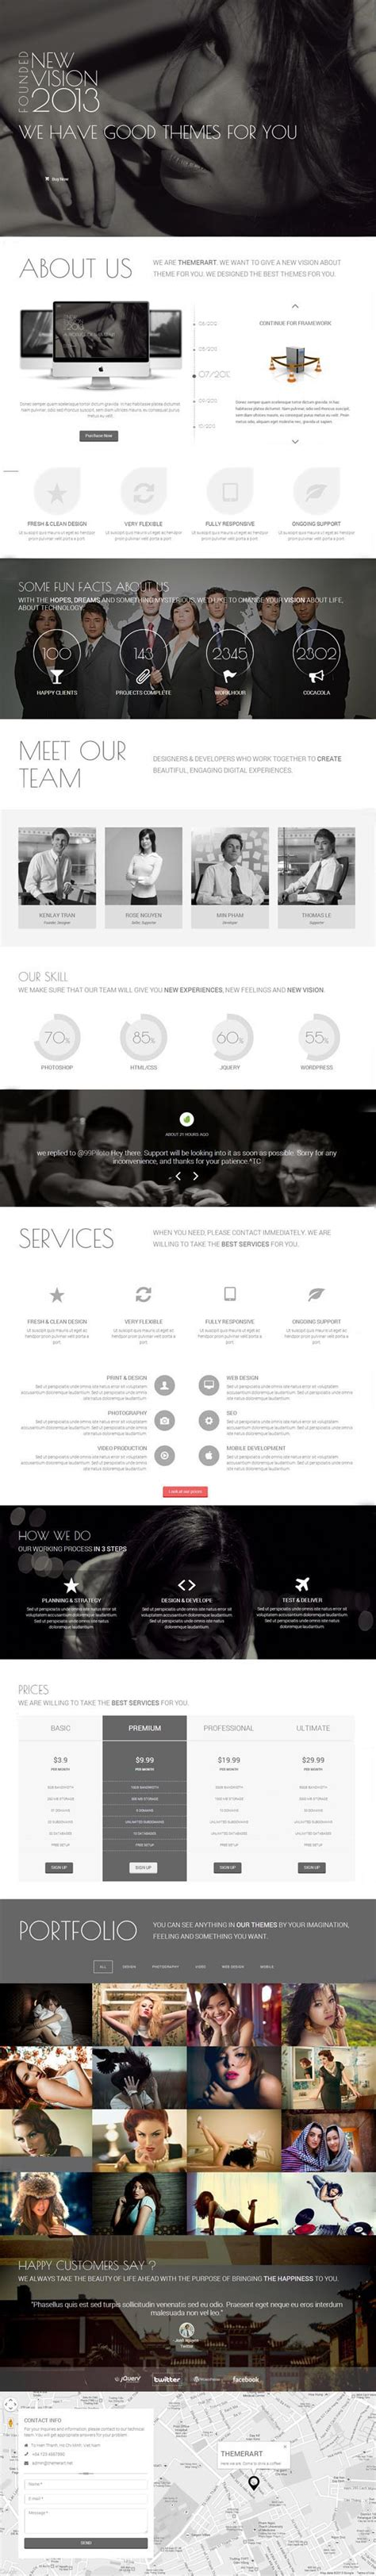 html5 responsive website templates web design graphic